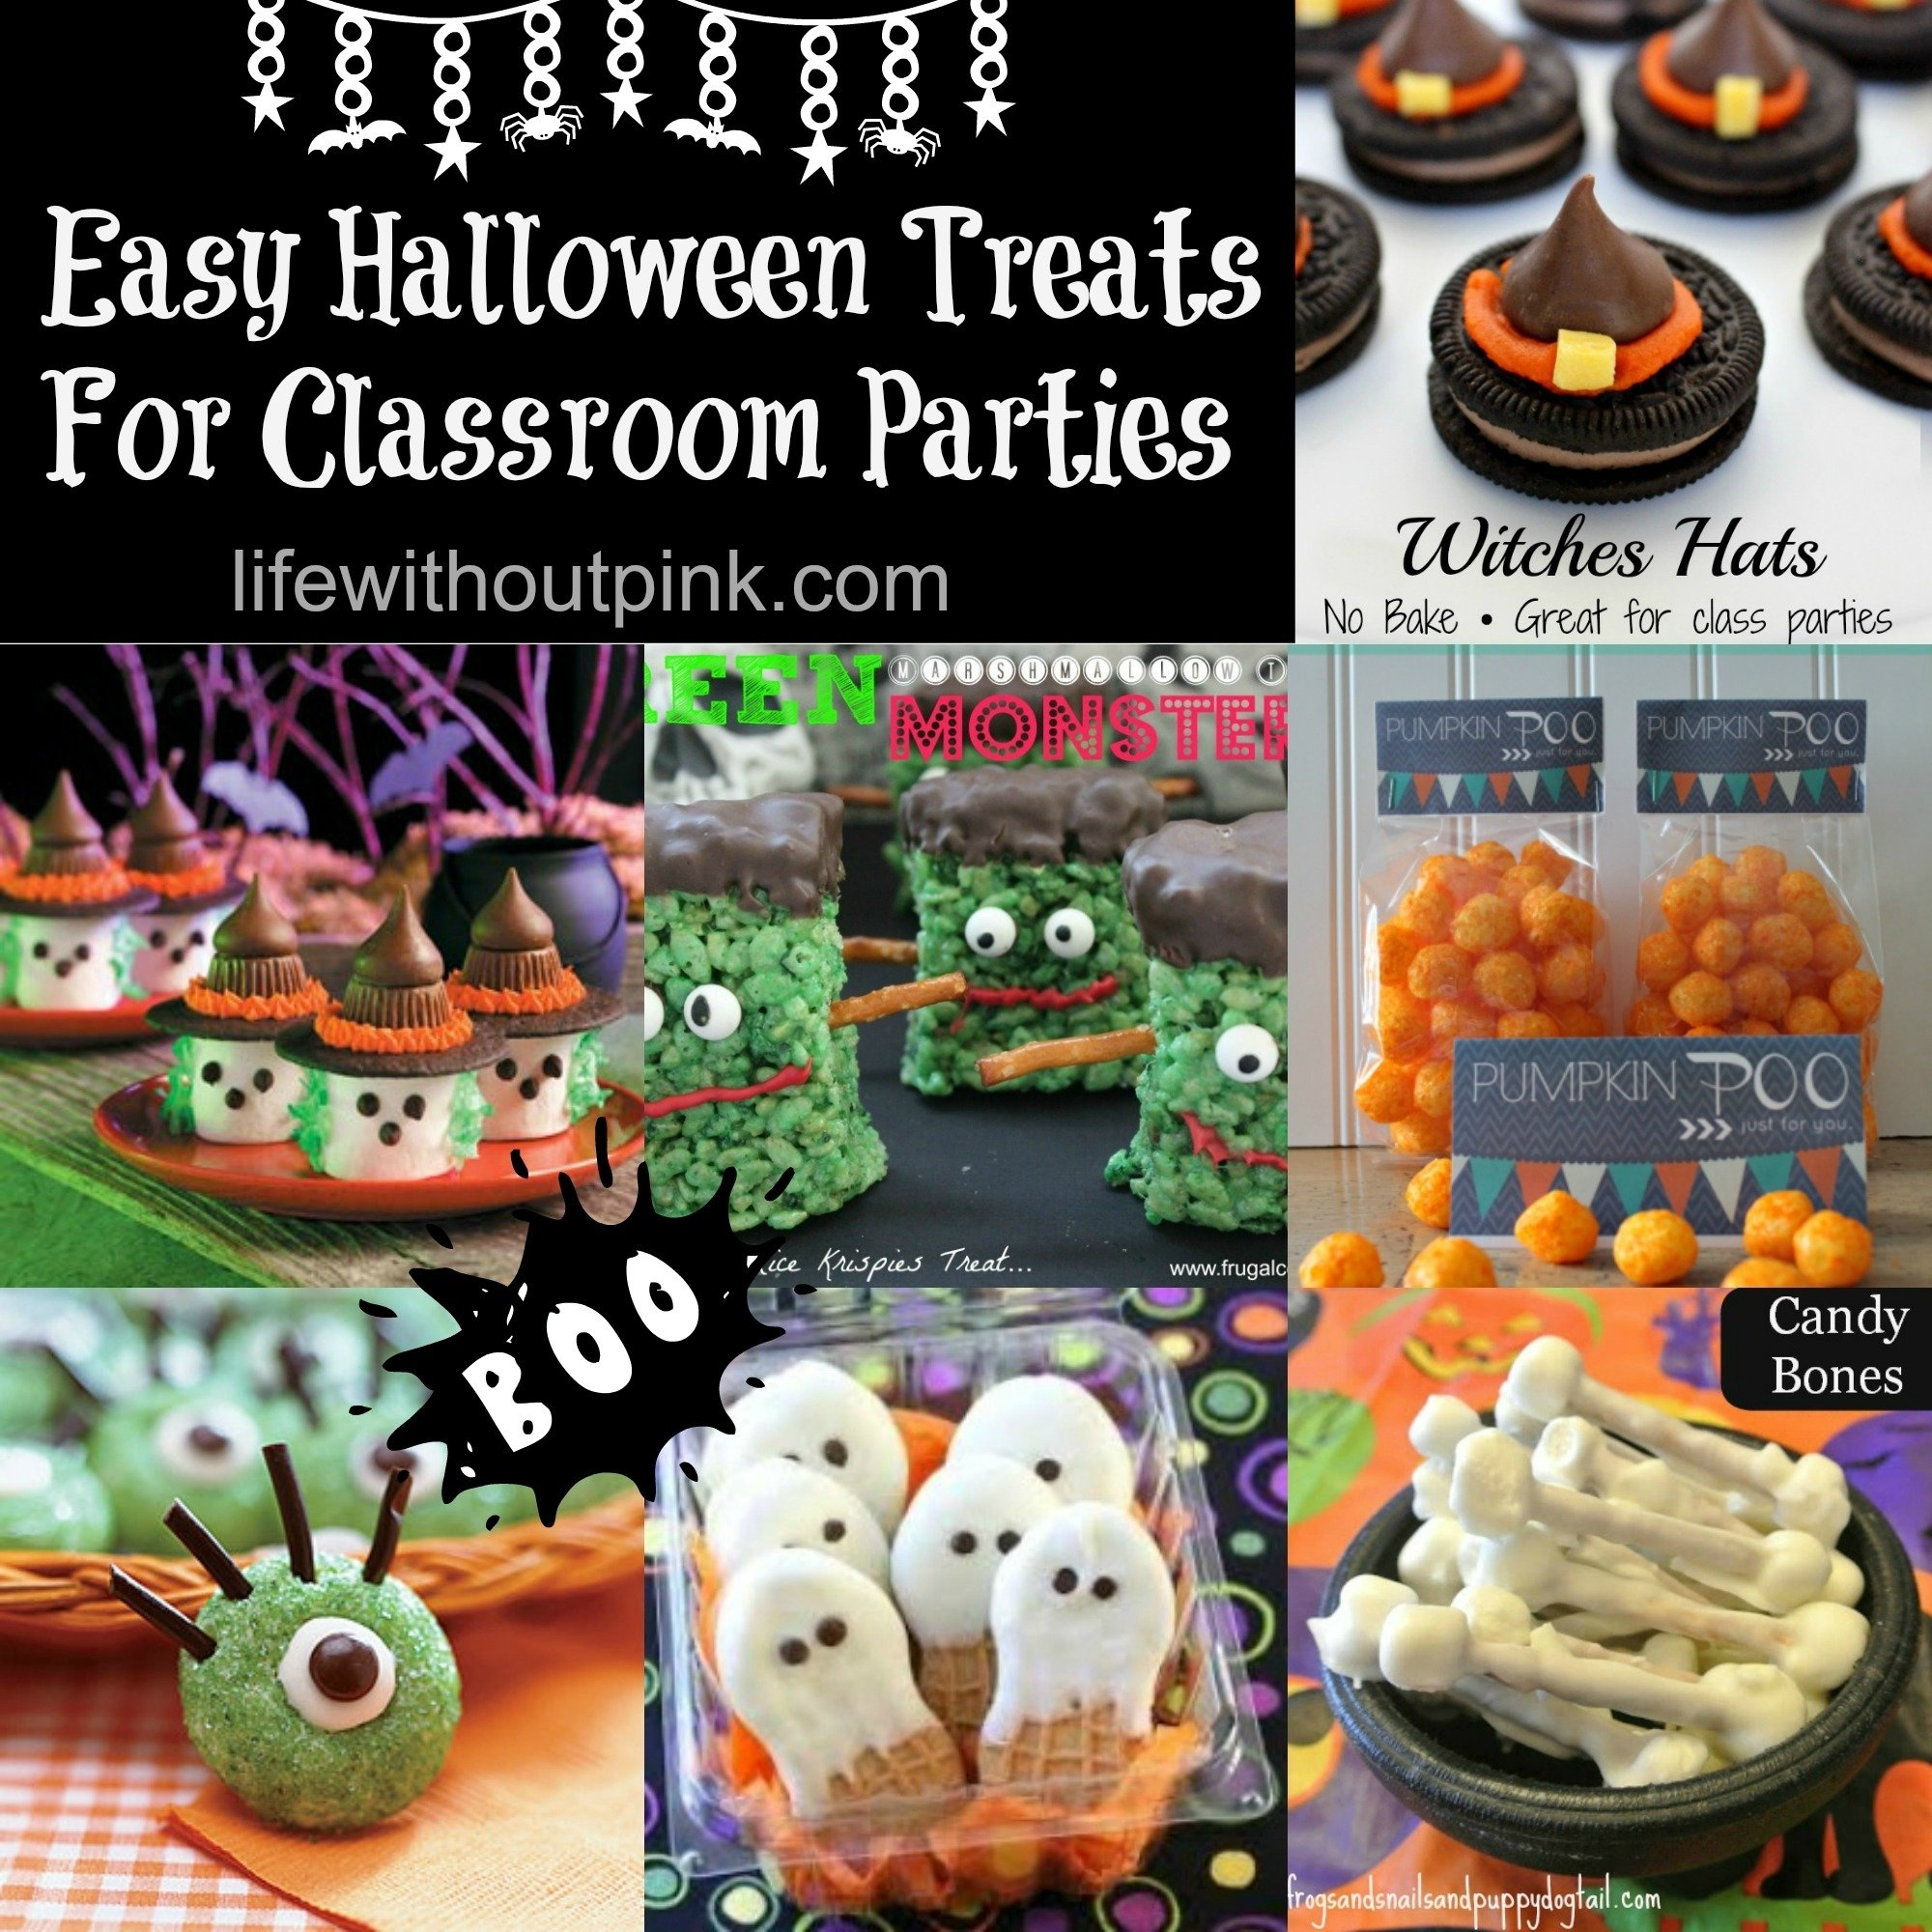 10 Unique Halloween Treat Ideas For School friday fresh picks easy halloween treats for classroom parties 1 2020